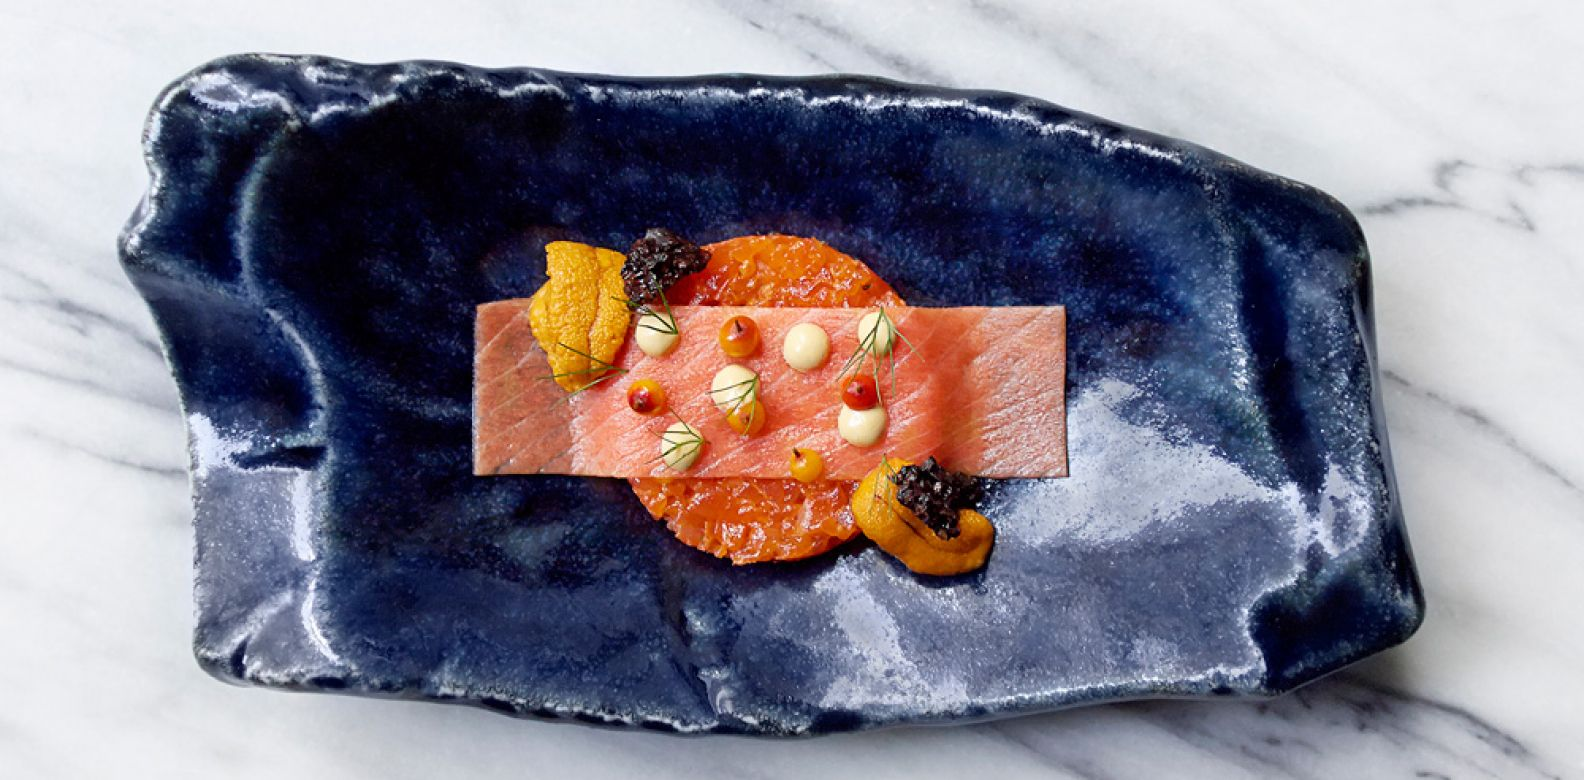 Gravlax and sea urchin (Photo: Signe Birck)